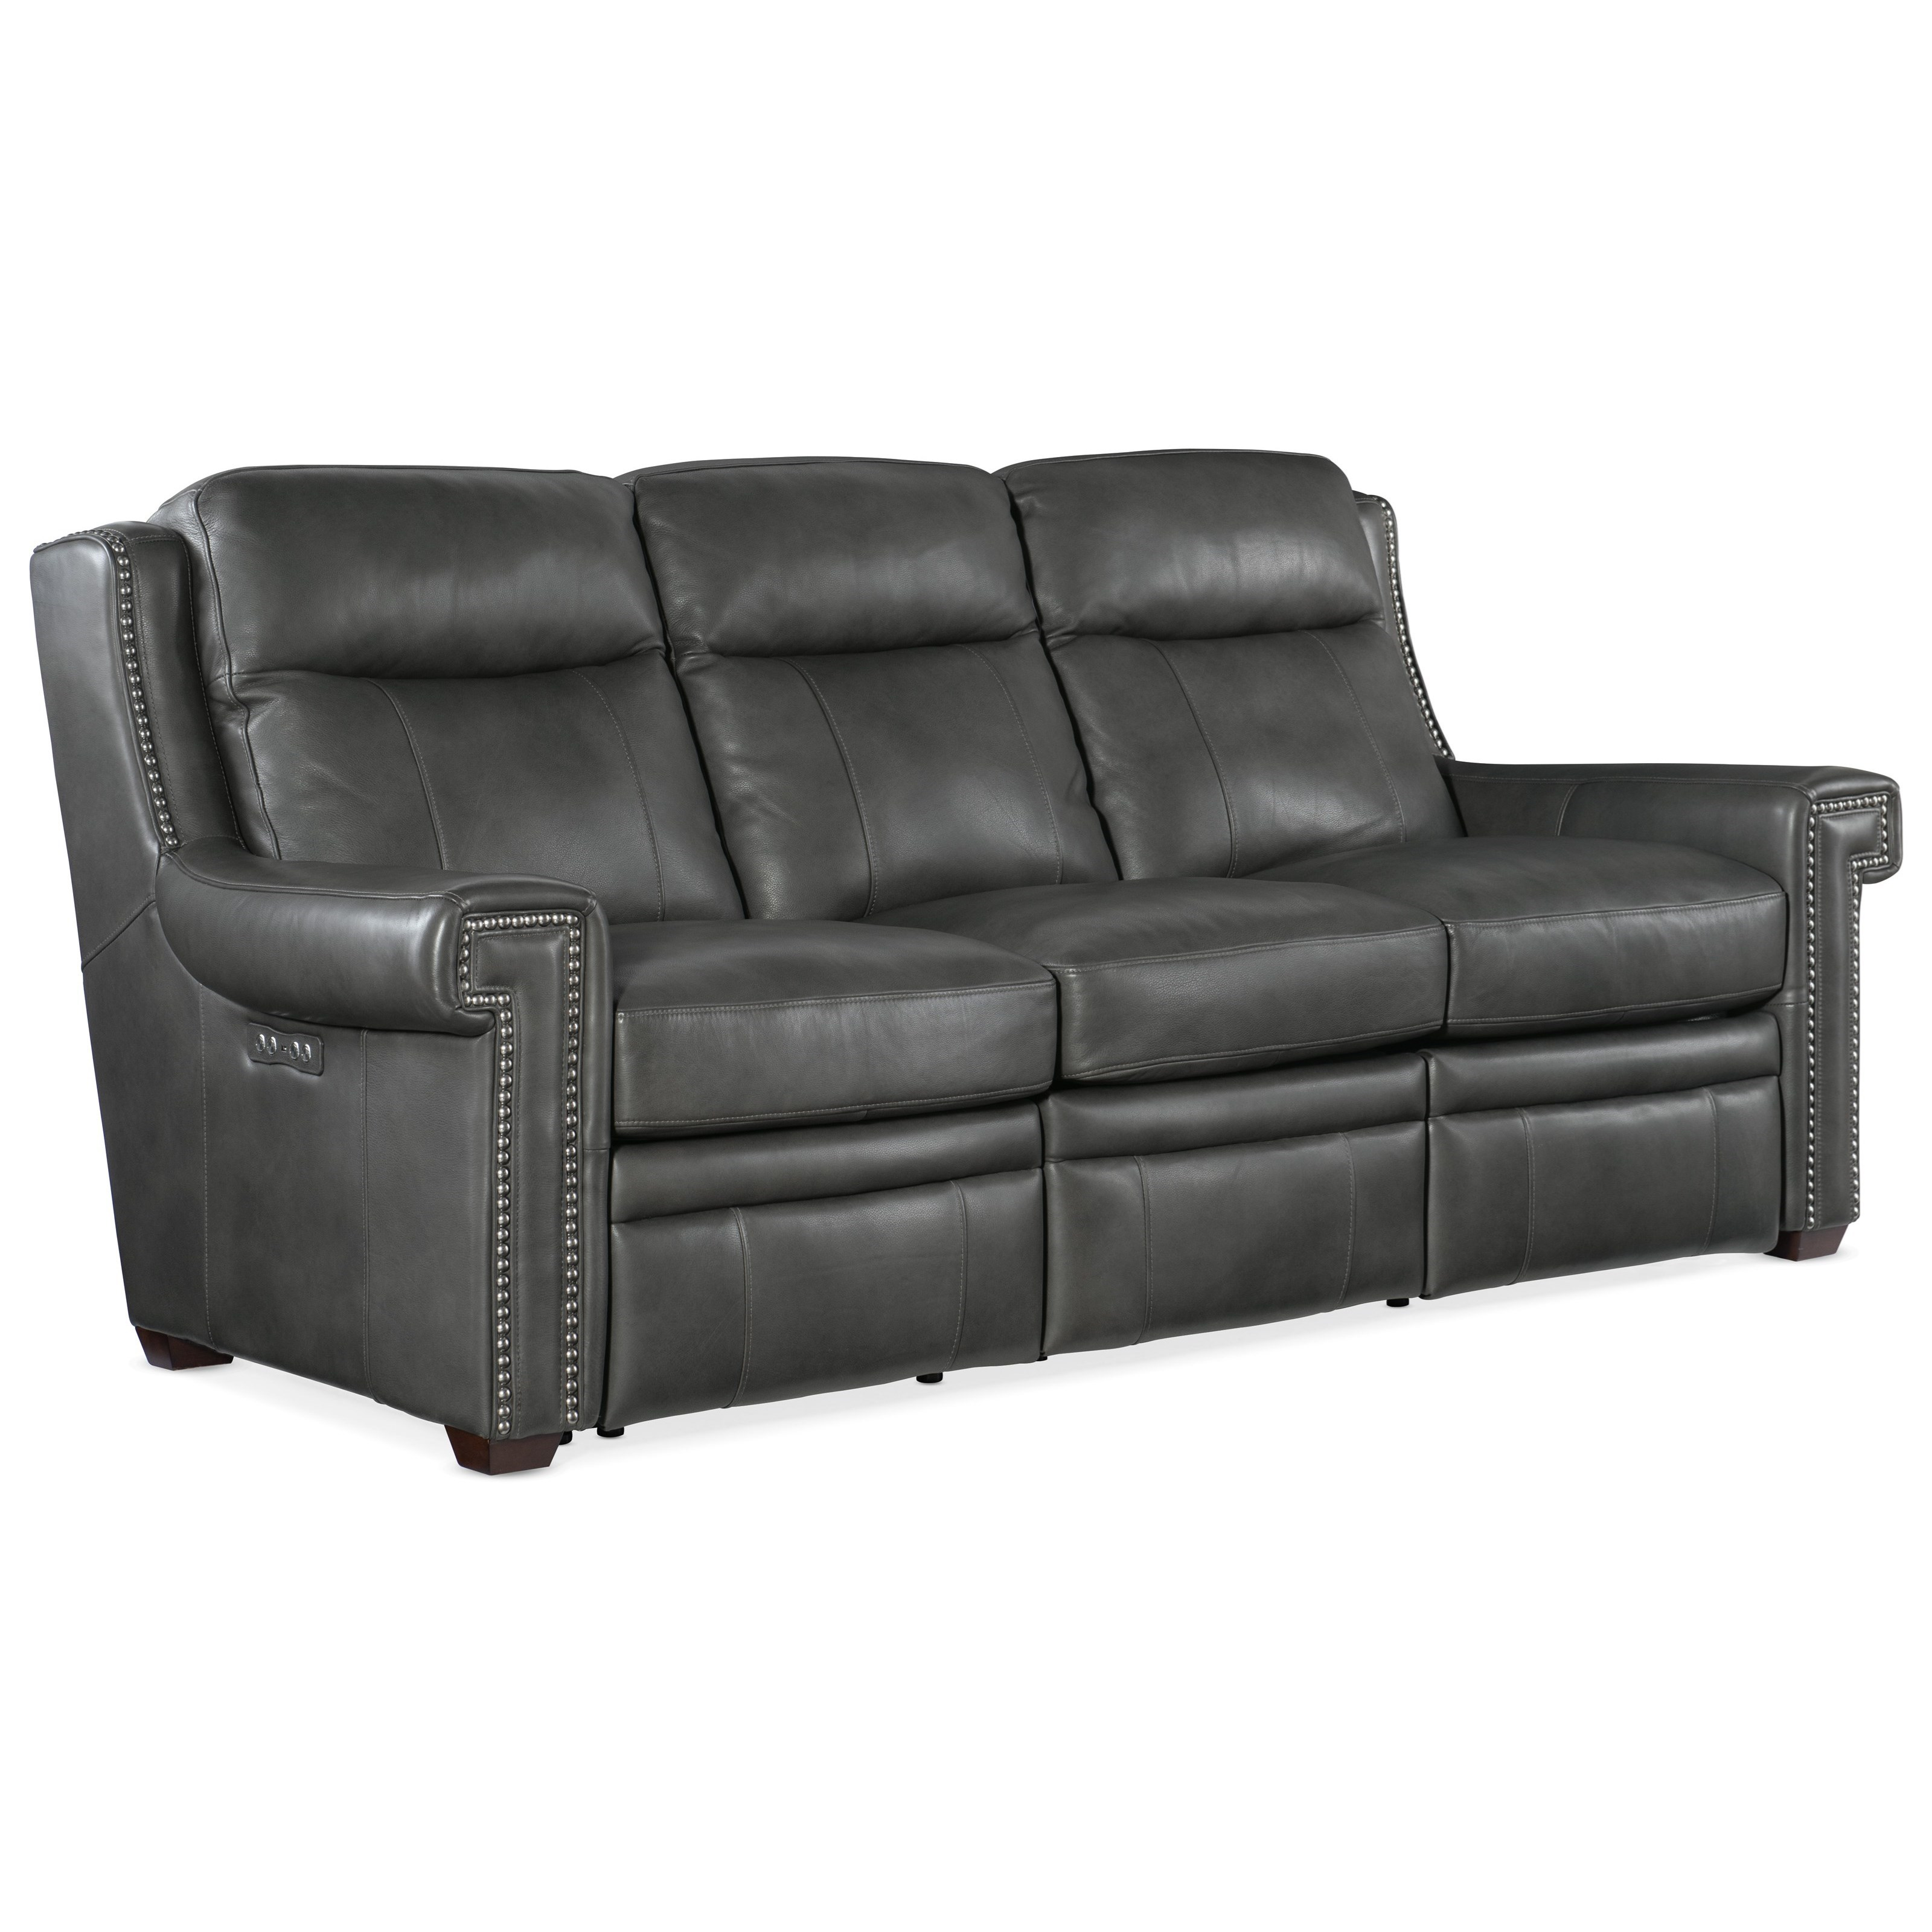 Mulberry Power Reclining Sofa w/ Power Headrests by Hooker Furniture at Baer's Furniture